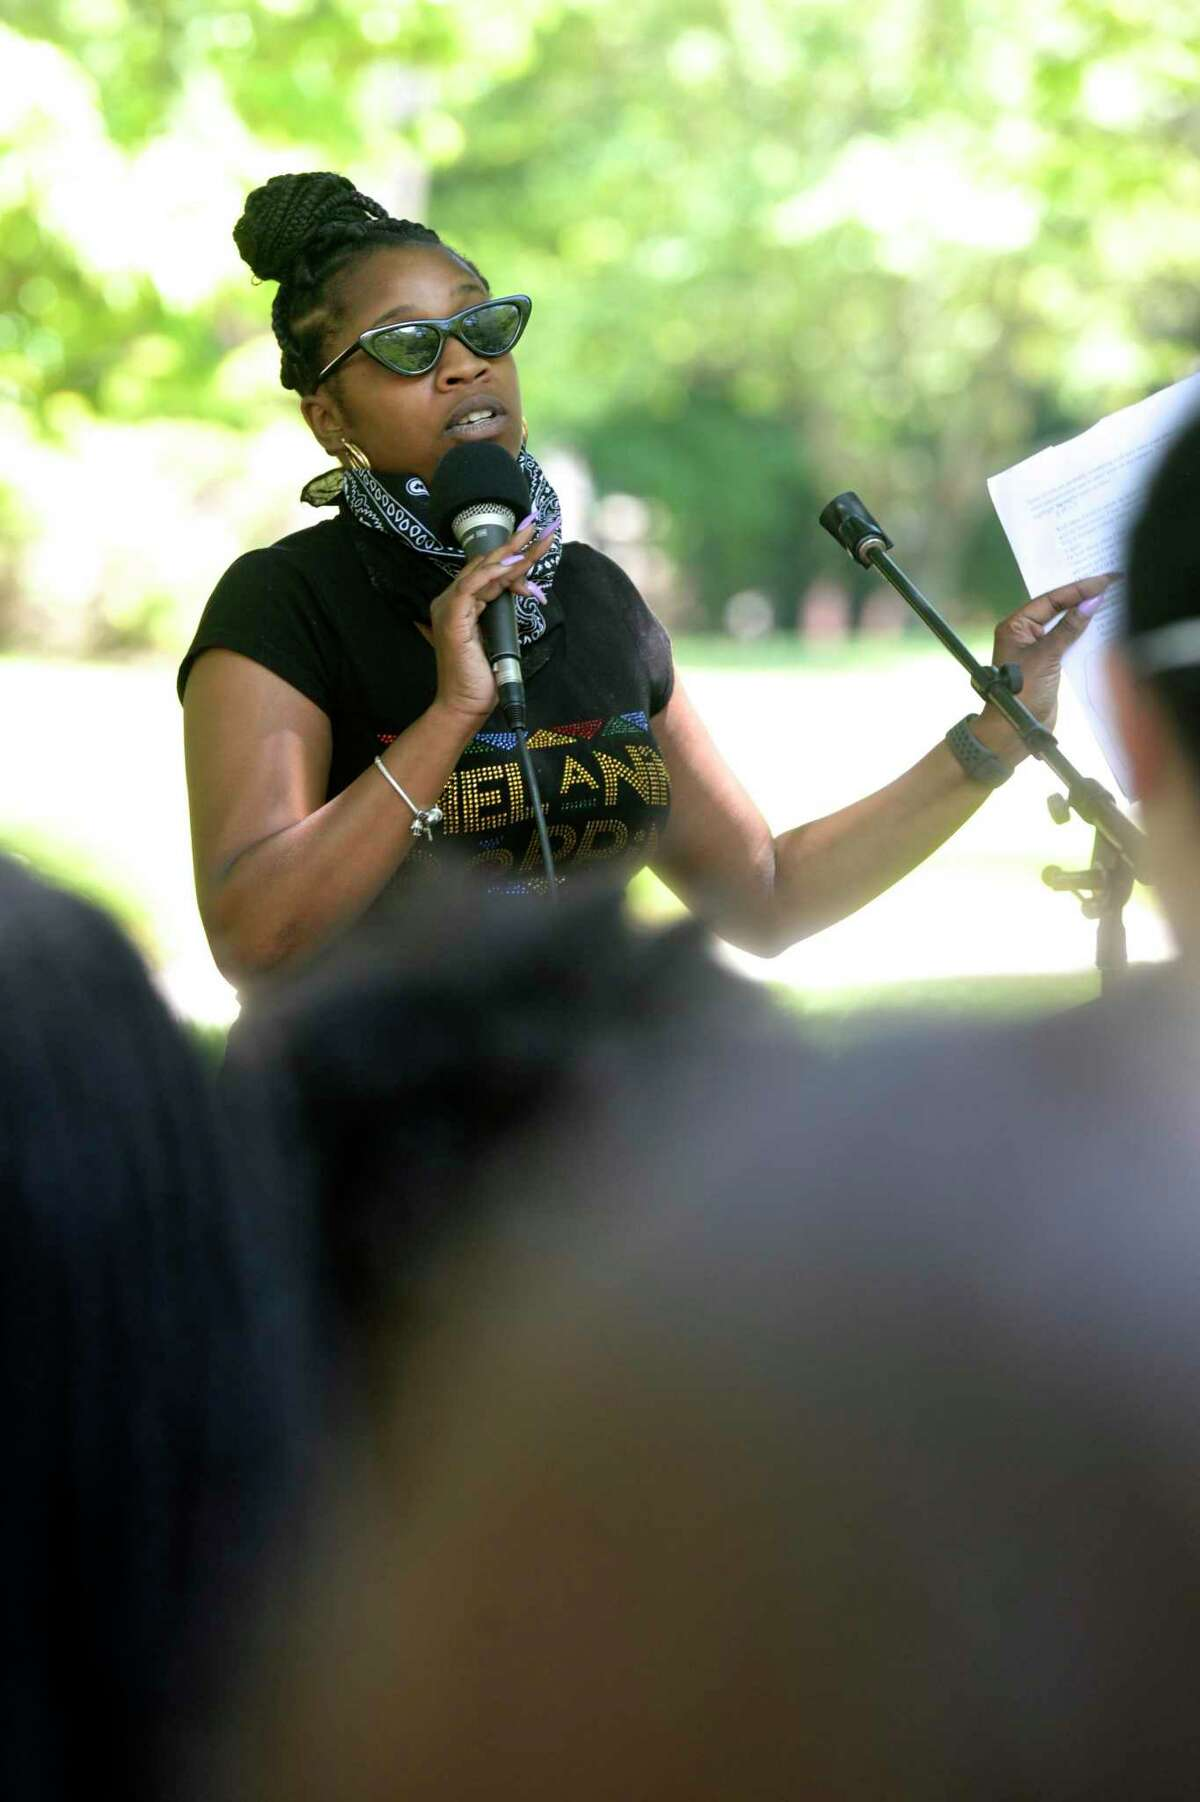 Vernay Snow, a Western Connecticut State University alumni, speaks after a march at the schools Midtown campus in support of the Black Lives Matter movement, Friday, June 12, 2020, in Danbury, Conn. One alumna, Vernay Snow, traveled nearly four hours from Maryland to speak, describing the racist remarks and bias she experienced from students, faculty and staff on campus.